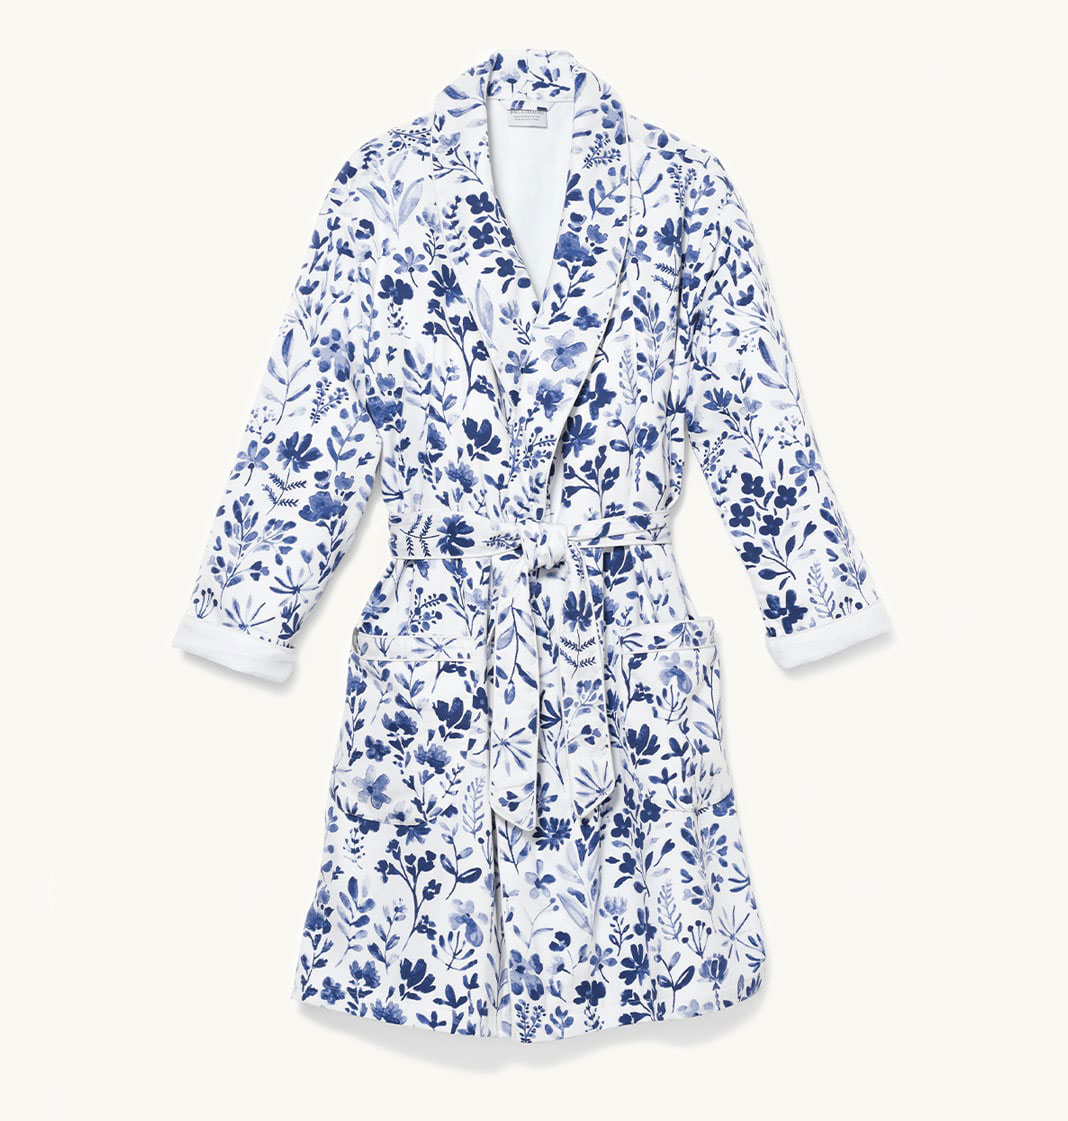 Mother's day gift ideas - Boll & Branch Women's Spa Robe